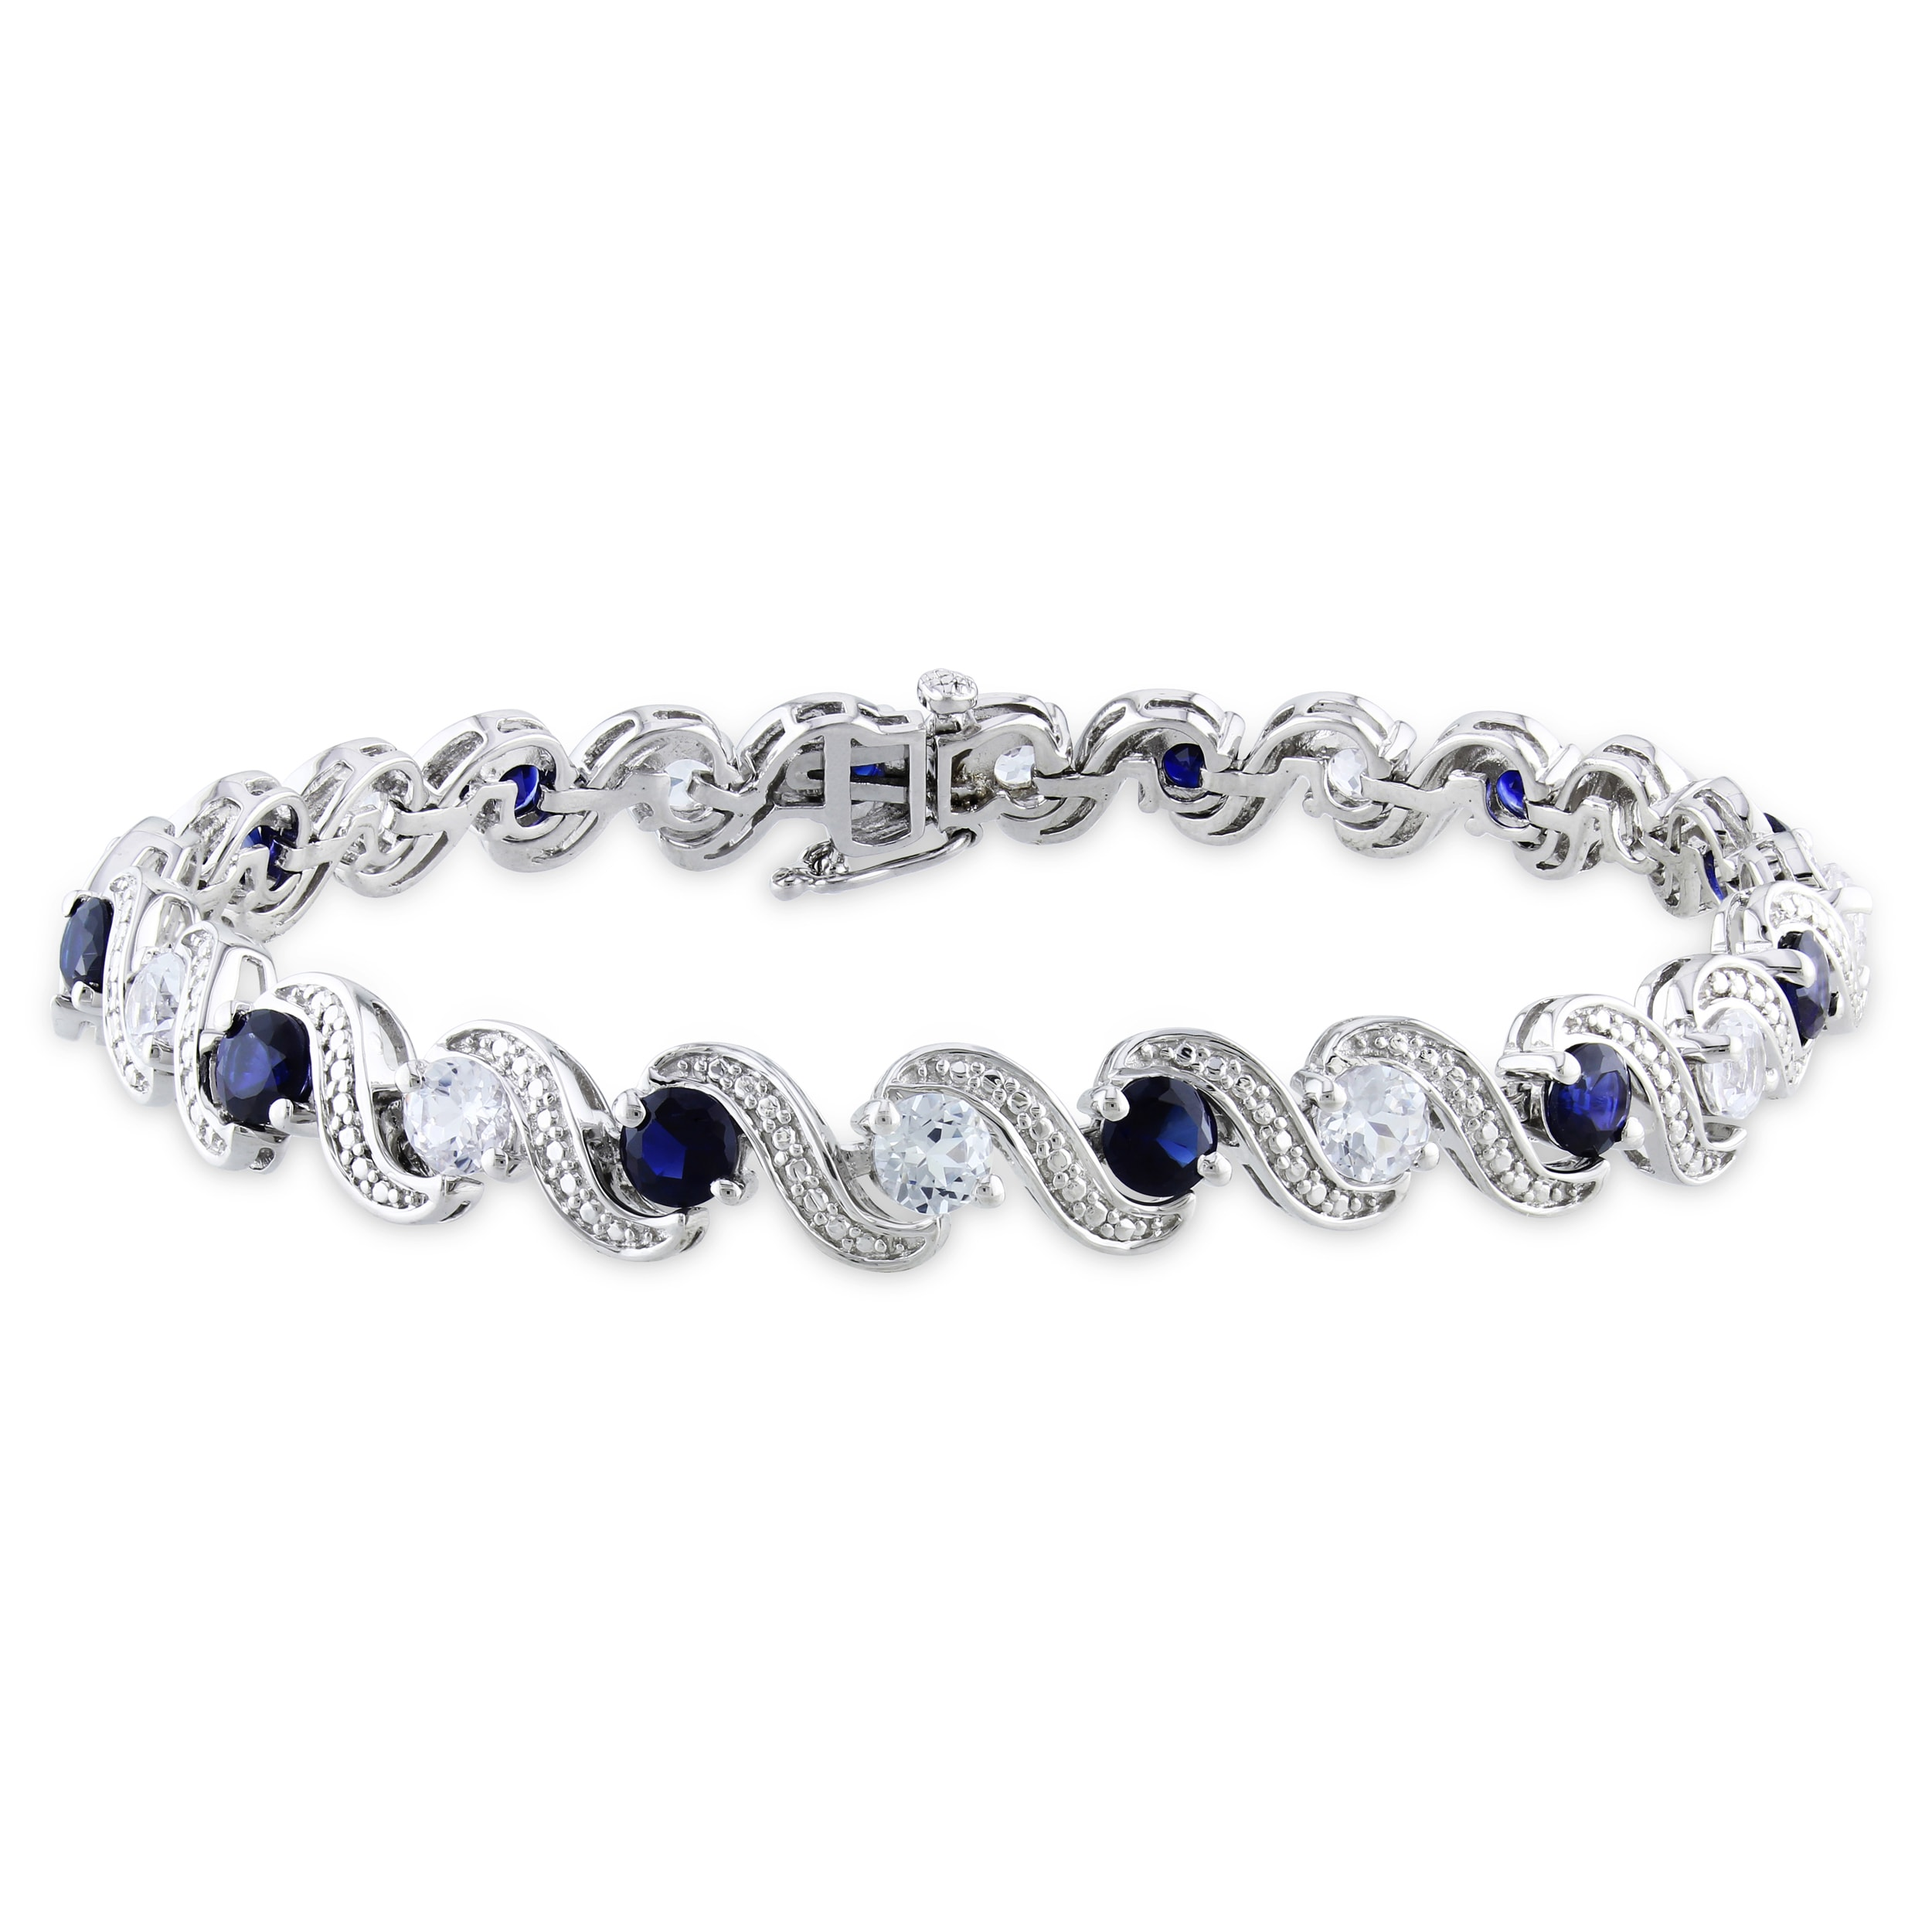 sapphire illusion imag tennis scroll maddaloni bracelet images to see more oval shop bracelets diamond